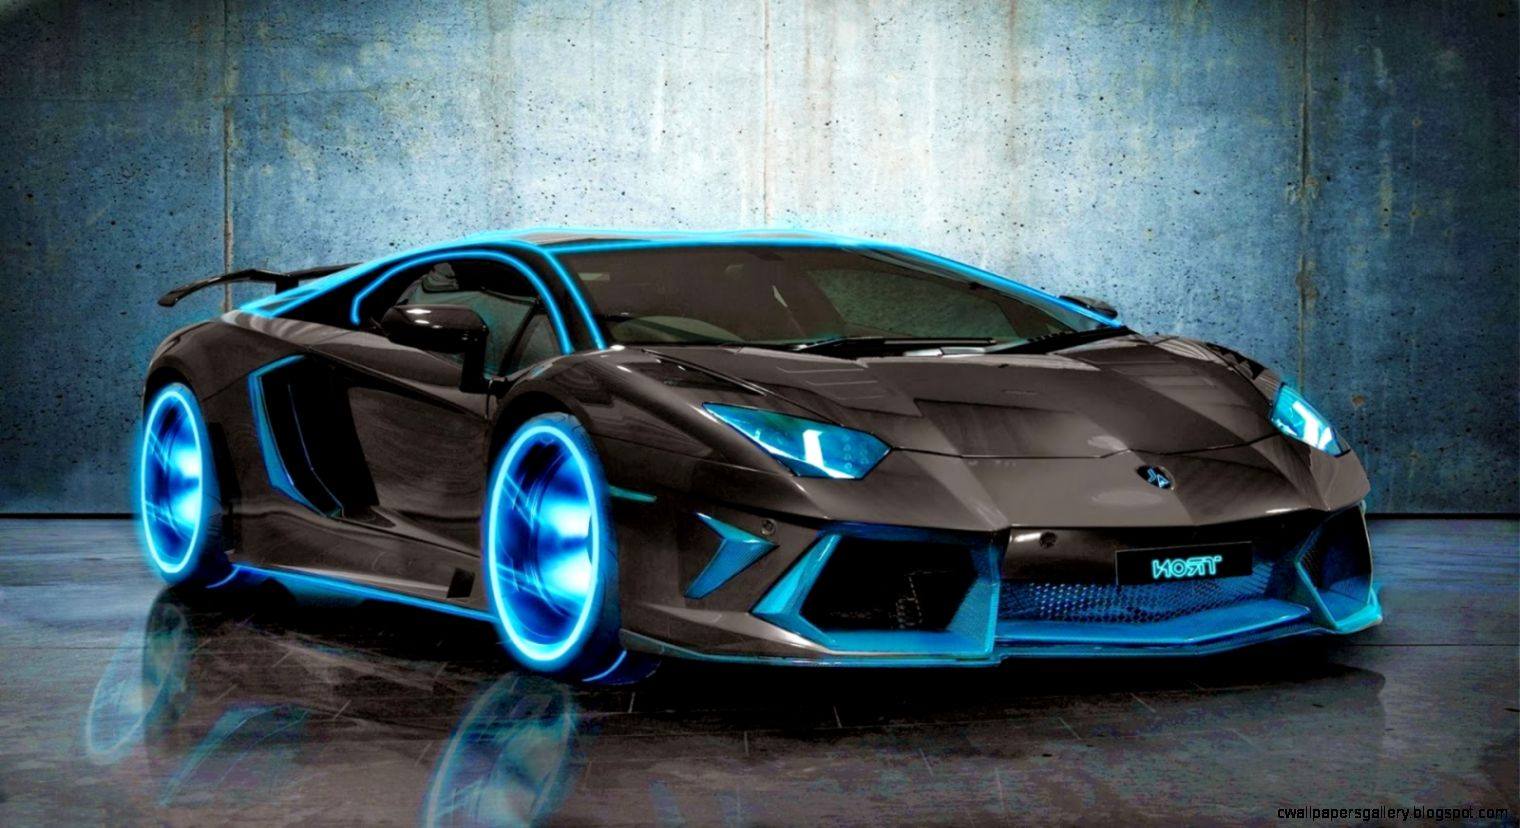 lamborghini aventador wallpapers hd html with Tron Lamborghini Aventador Wallpaper on Batman Dark Knoght Rises Wallpapers moreover Monster Energy Hd Wallpaper together with Lamborghini Veneno White Car Wallpaper Hd likewise Tron Lamborghini Aventador Wallpaper as well Images Of Hearts.